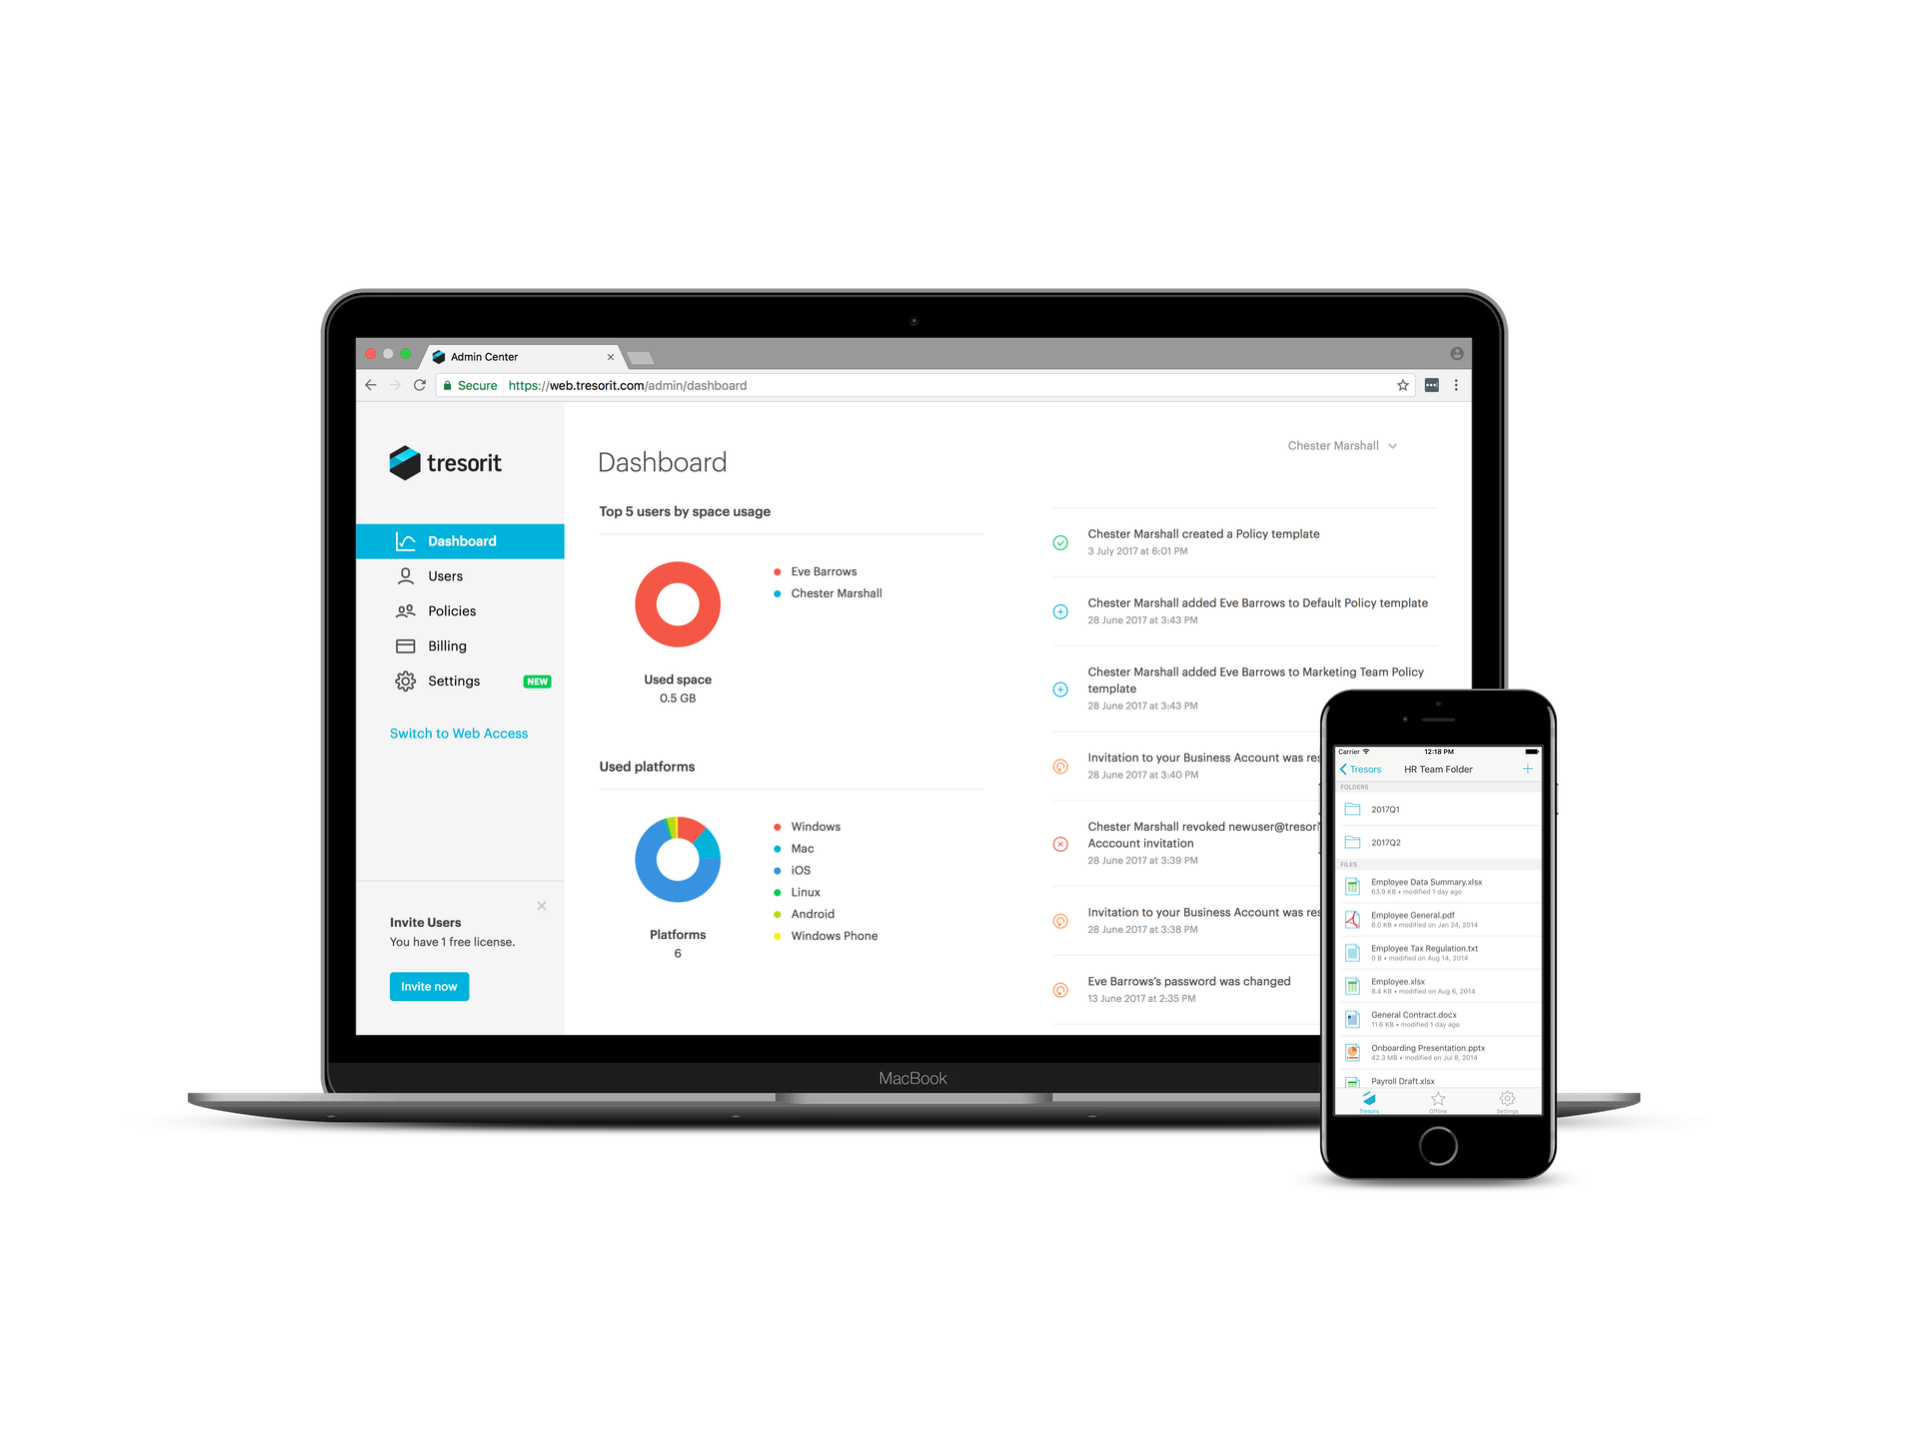 Tresorit rolls out new business features to help companies keep